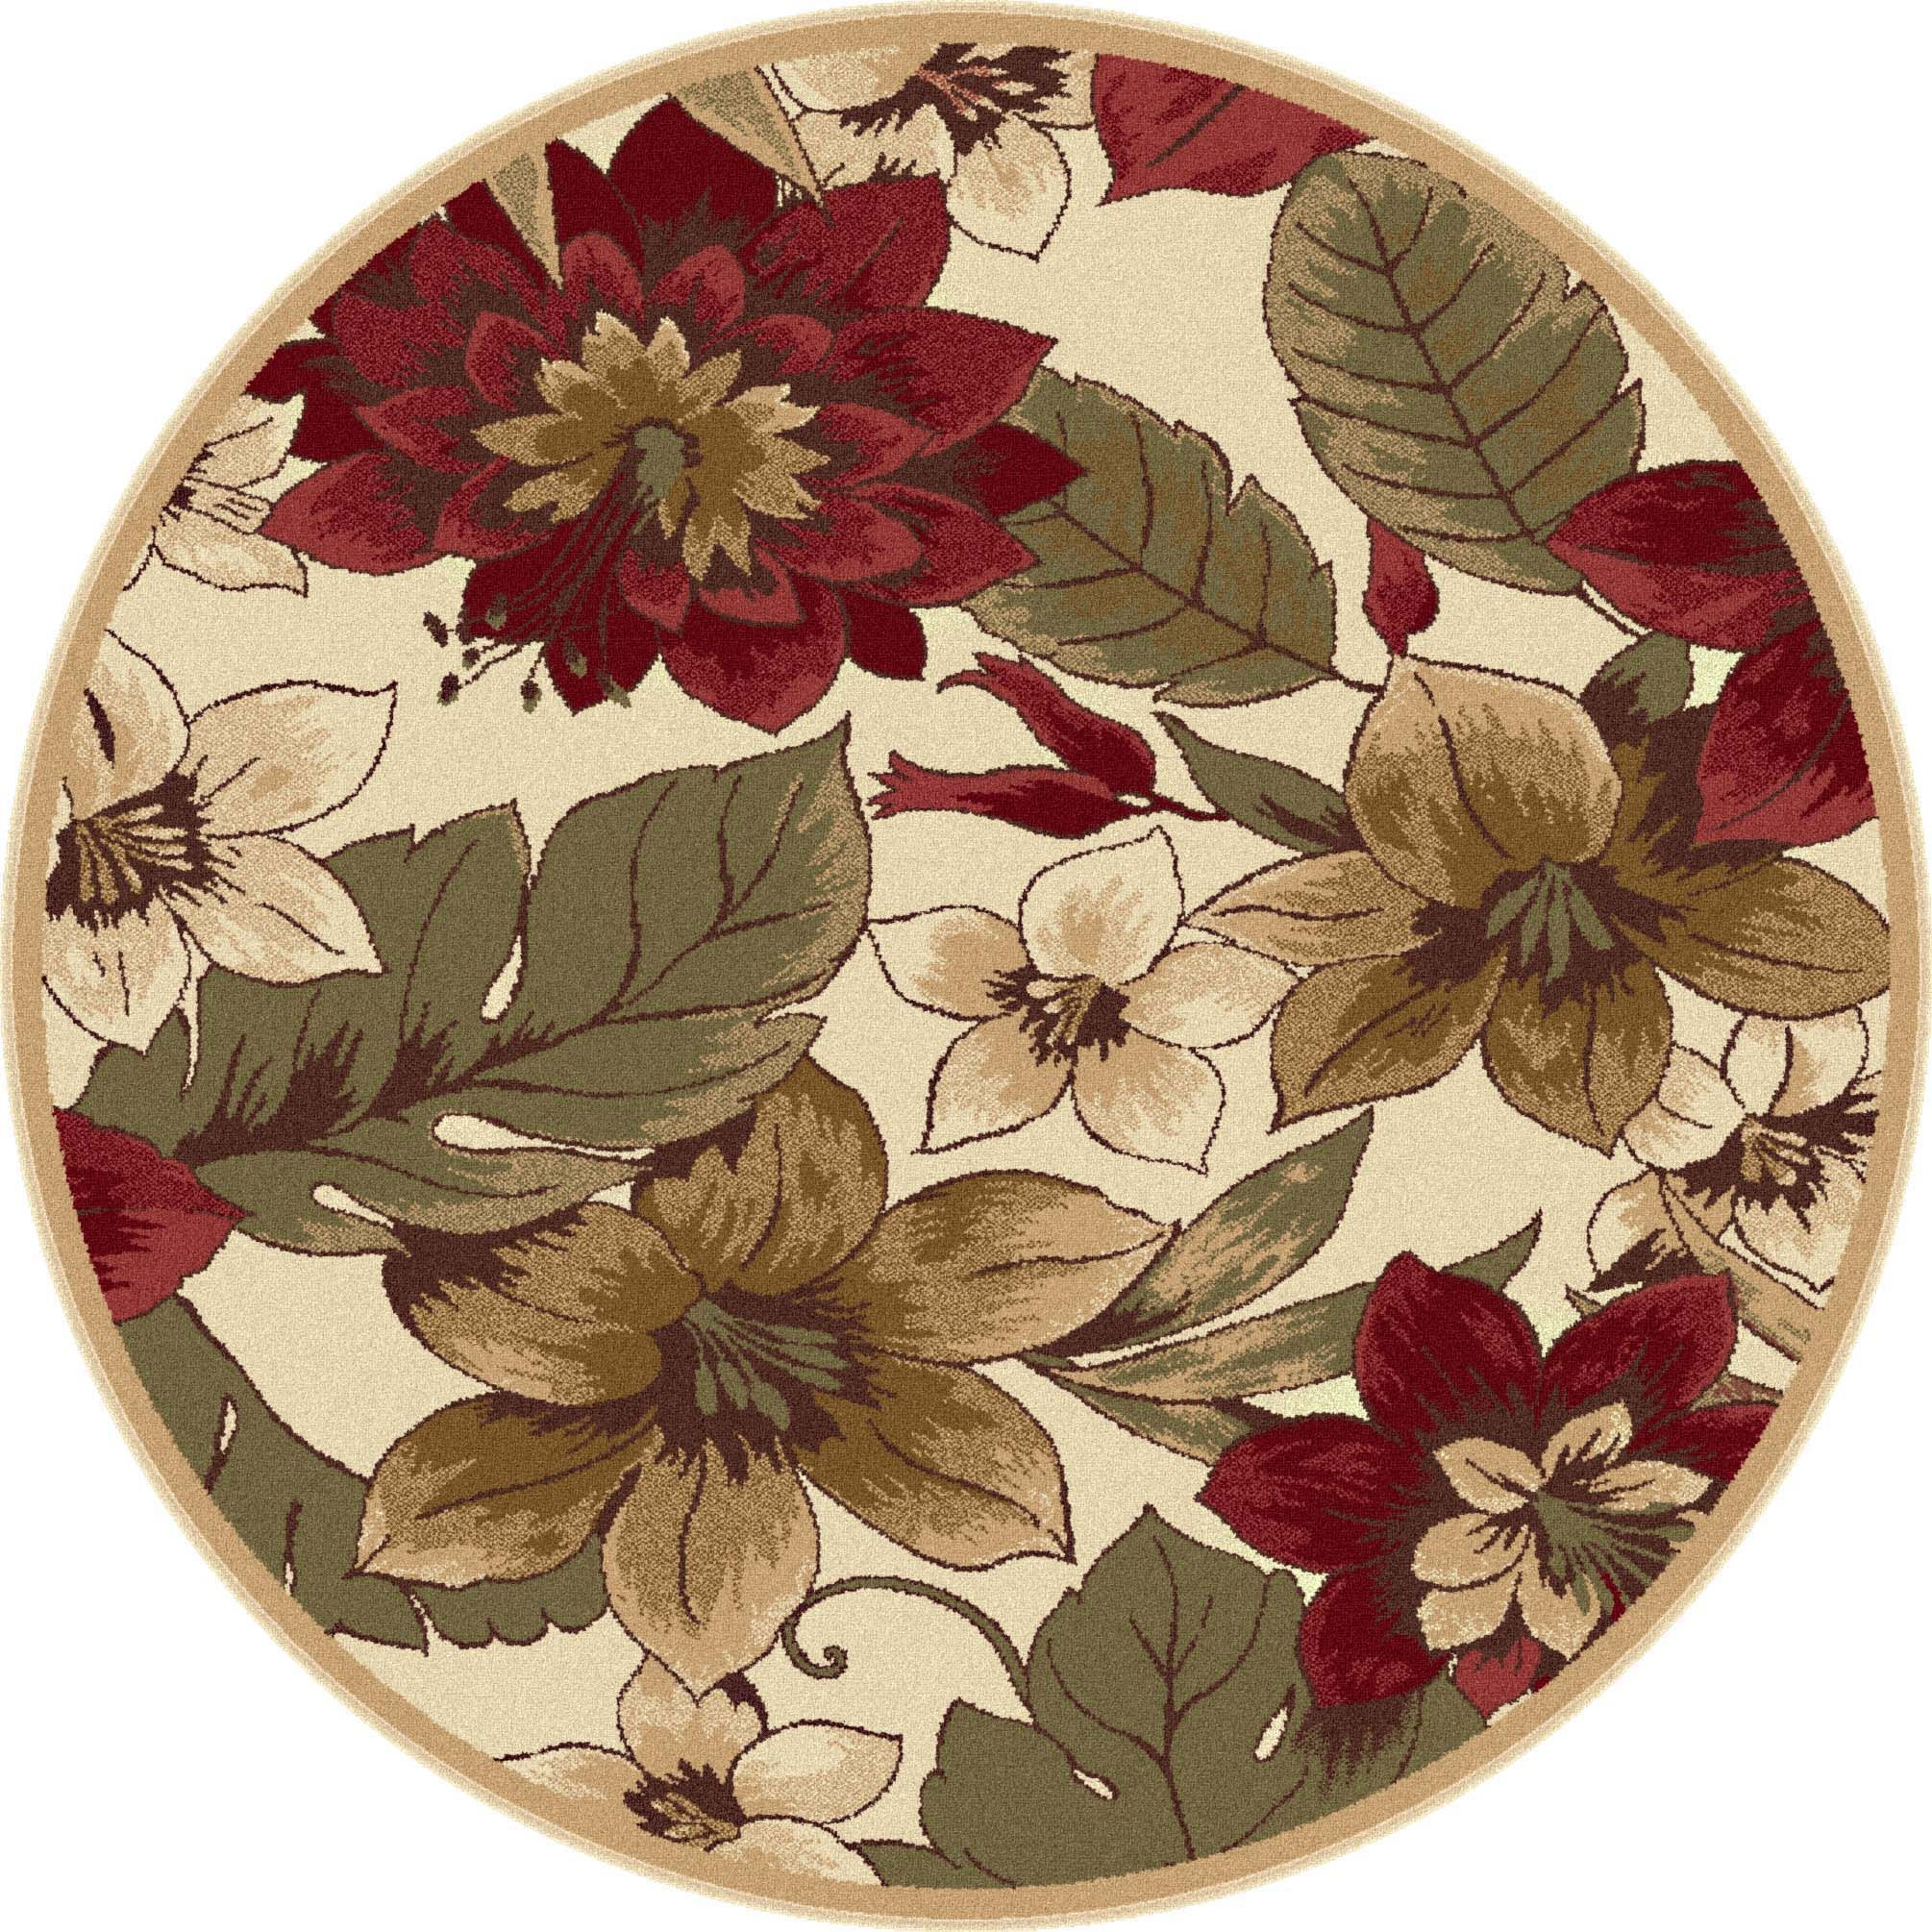 Alise Infinity Ivory Round Rug ( 5' 3) (Infinity Collection 5' 3'' Round Rug), Red, Size 5'3 (Plastic, Floral)